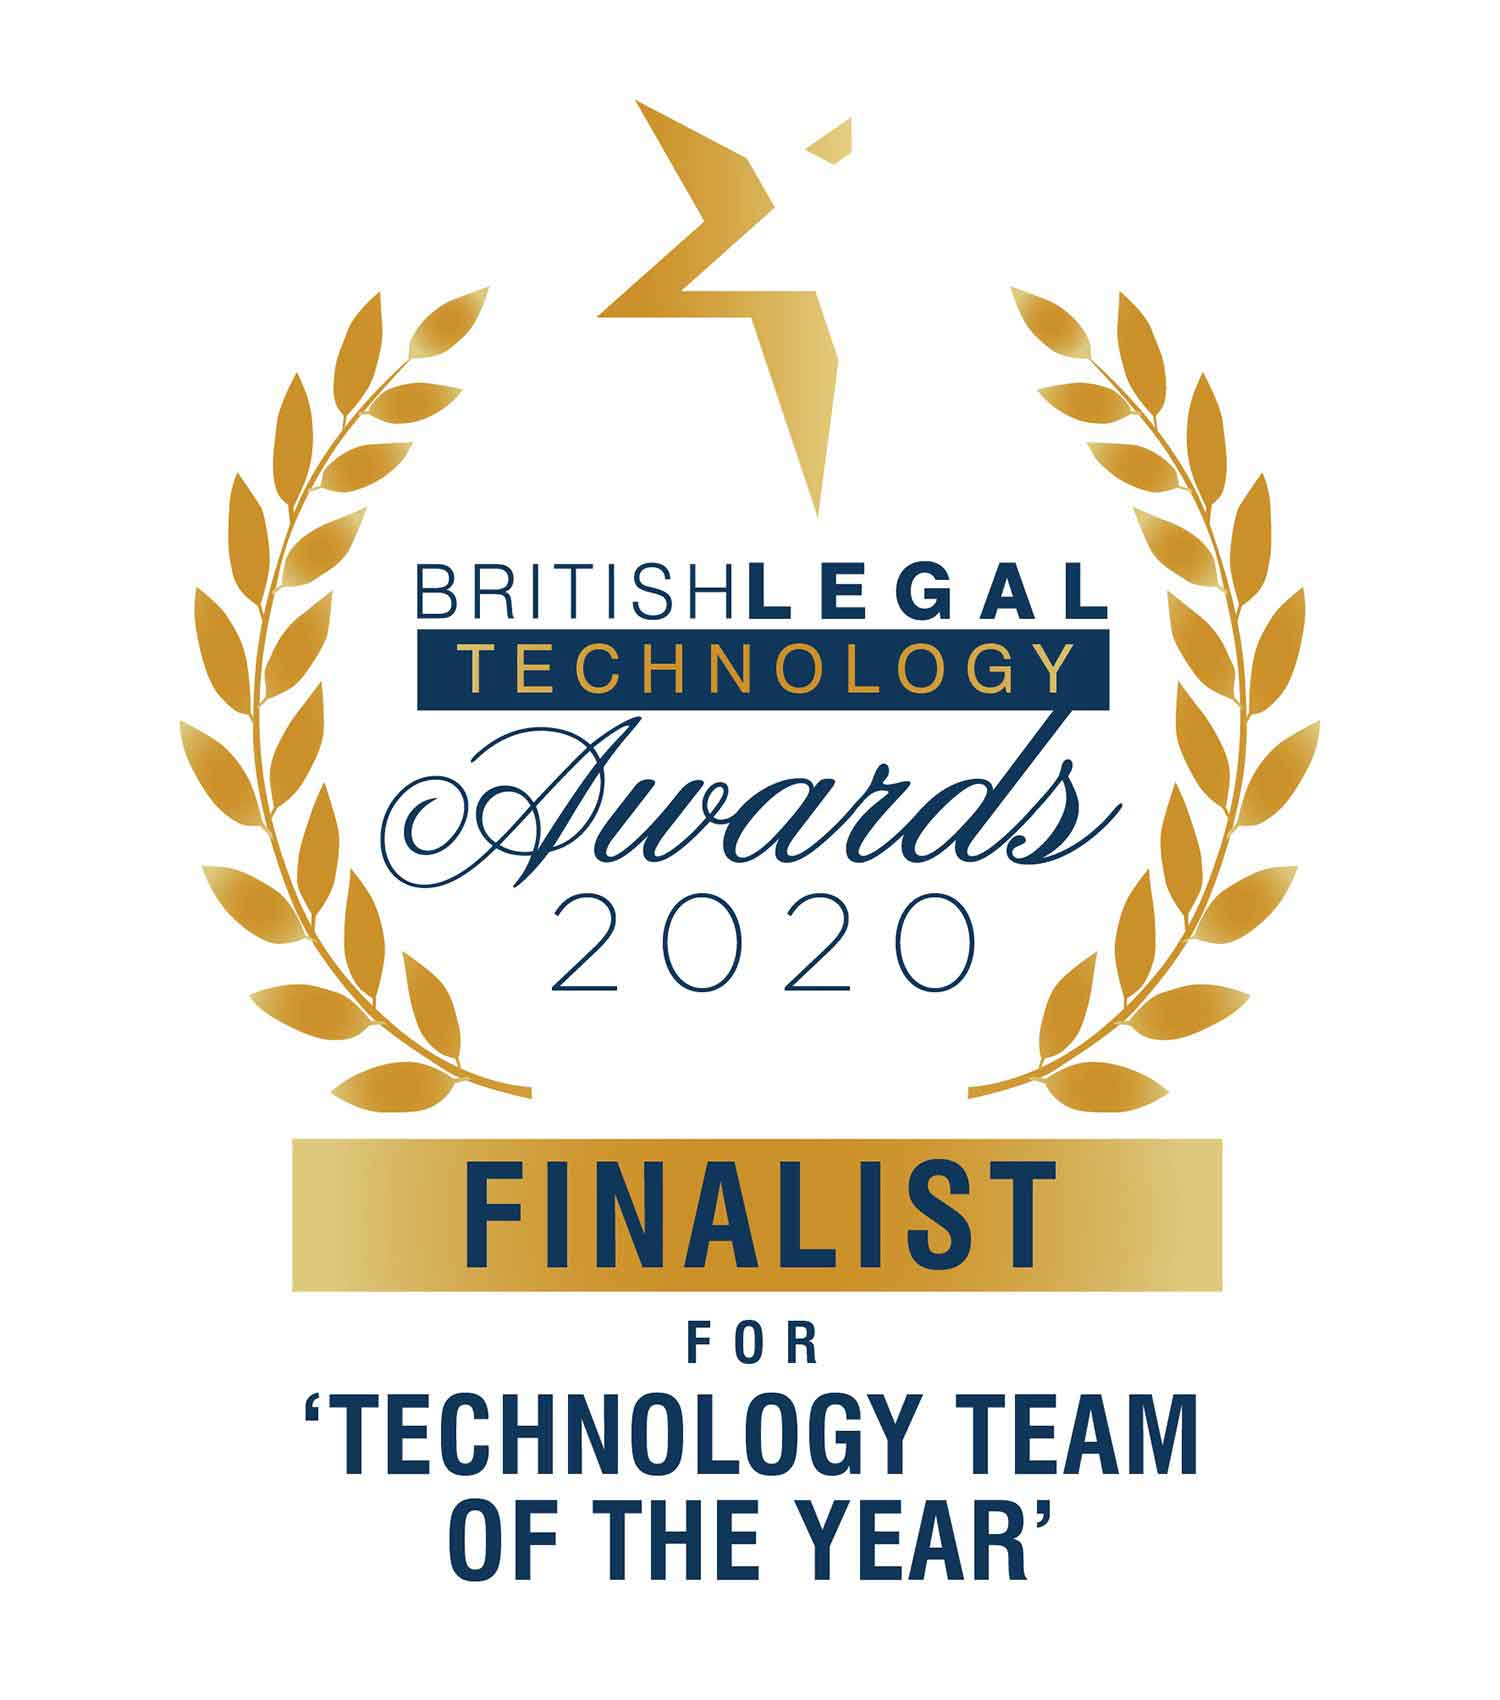 Forsters announced as finalists for the British Legal Technology Awards 2020 Team of the Year